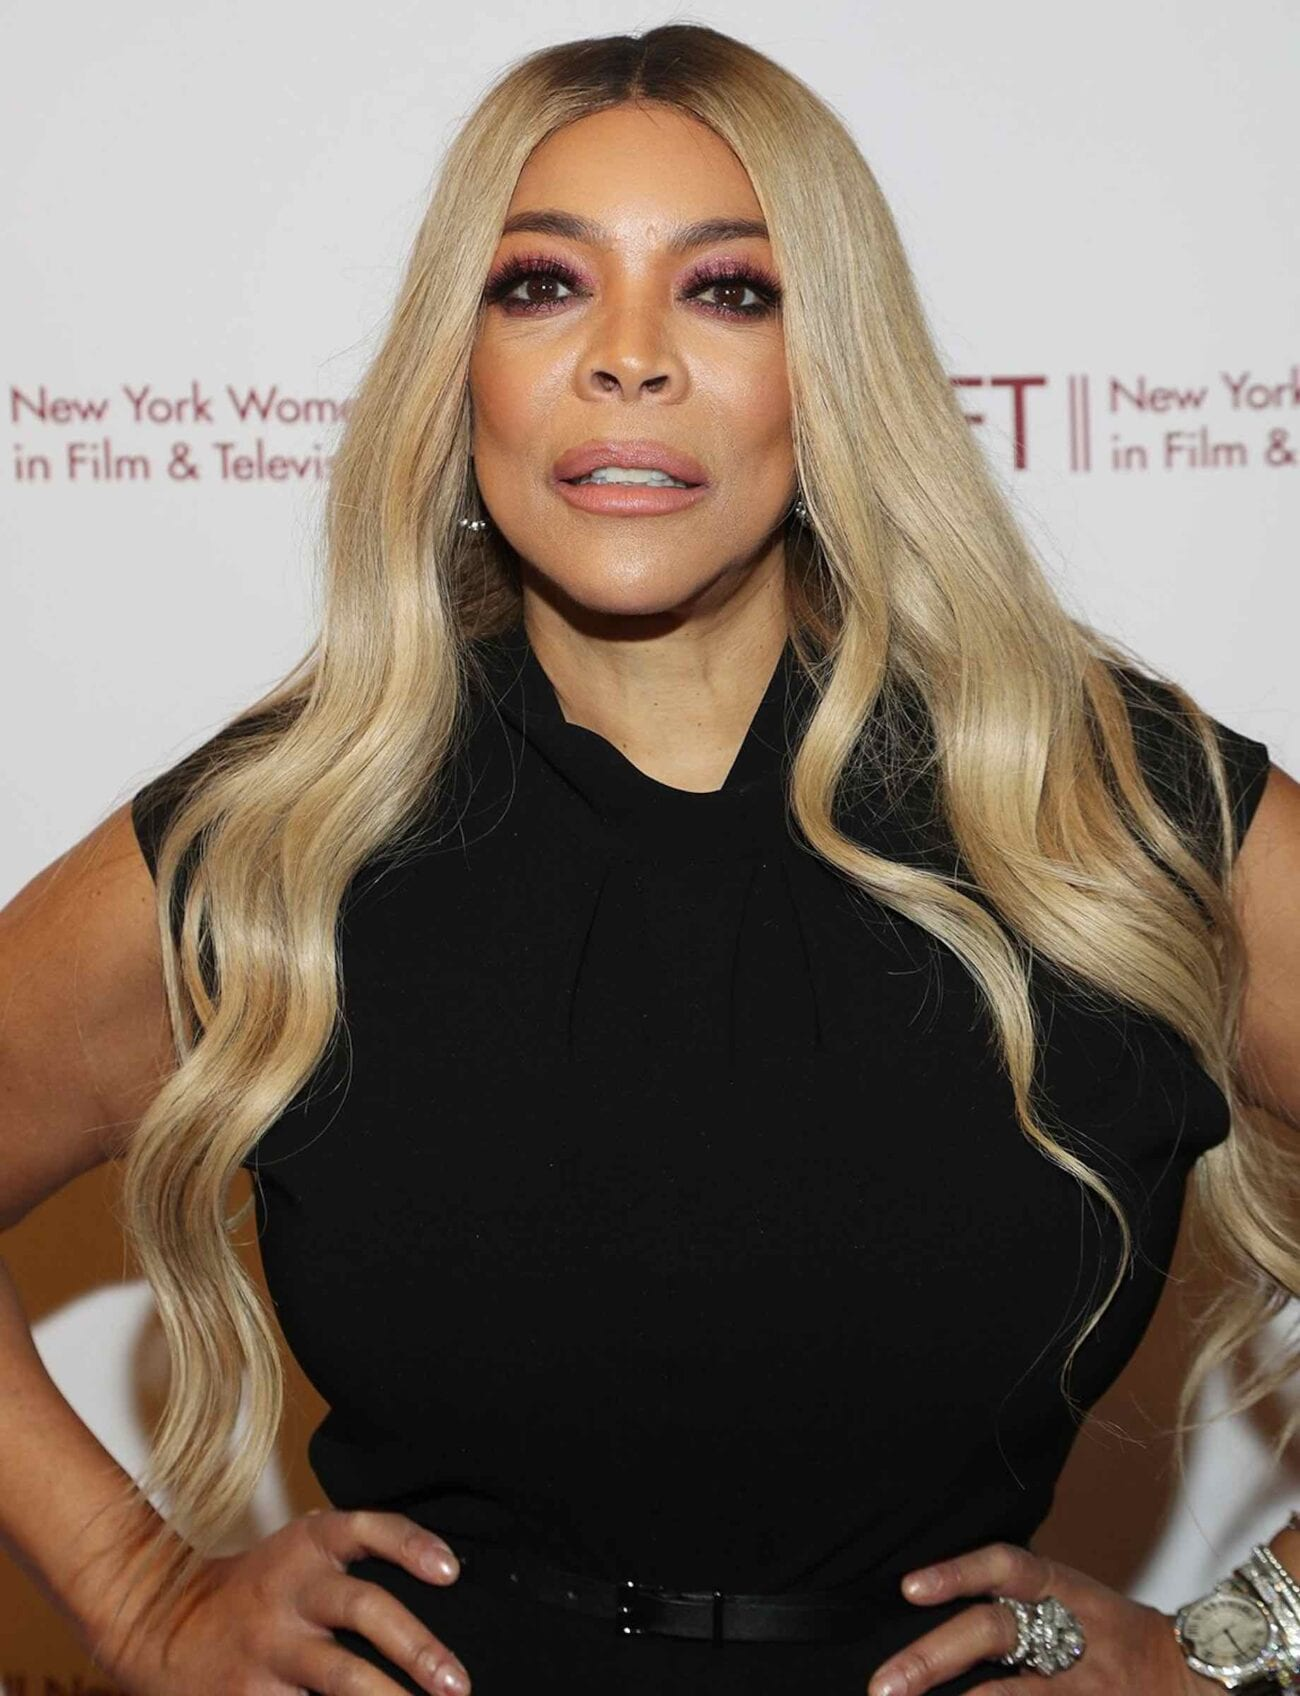 Wendy Williams is once again trending due to her treatment of young TikToker Swavy's death. Get ready to change the channel and dive into these reactions.